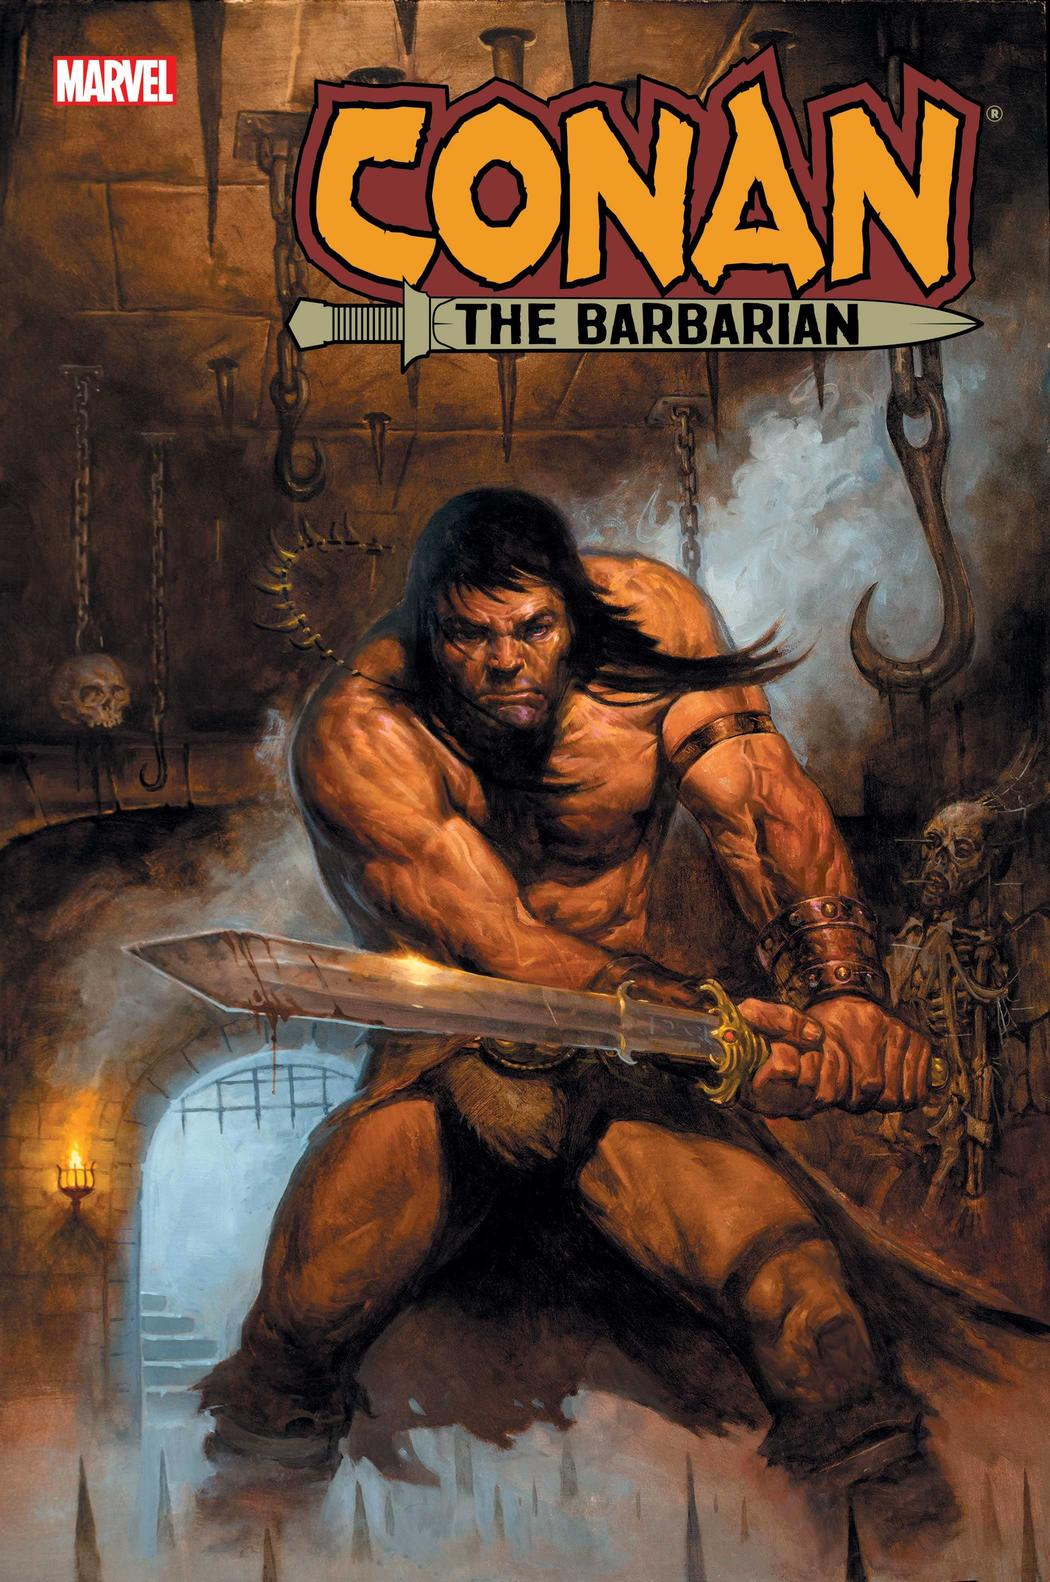 CONAN THE BARBARIAN #13 cover by E.M. Gist